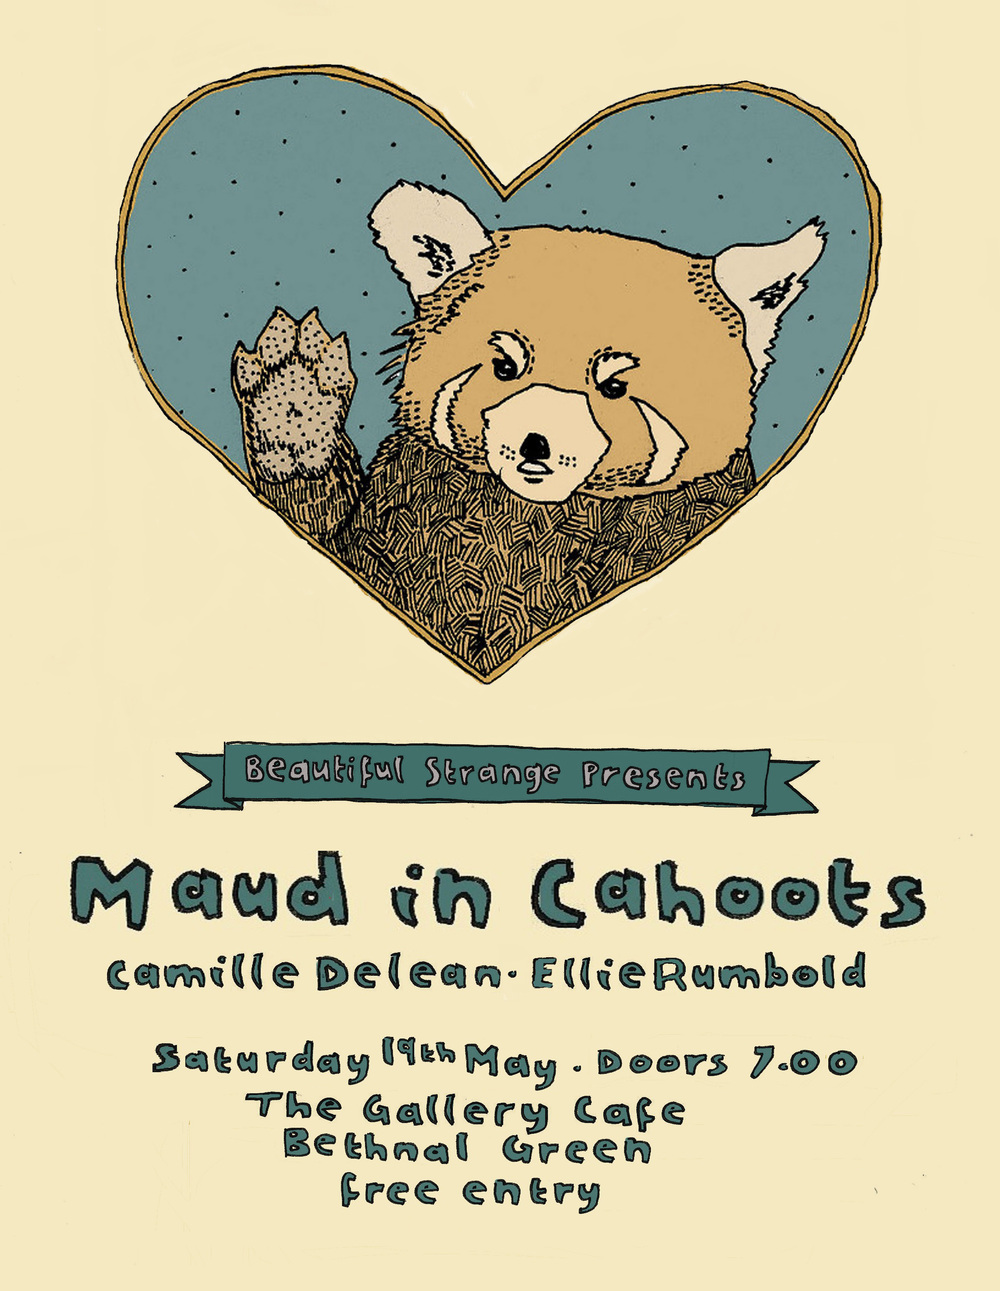 Maud in Cahoots + Camille Delean + Ellie Rumbold